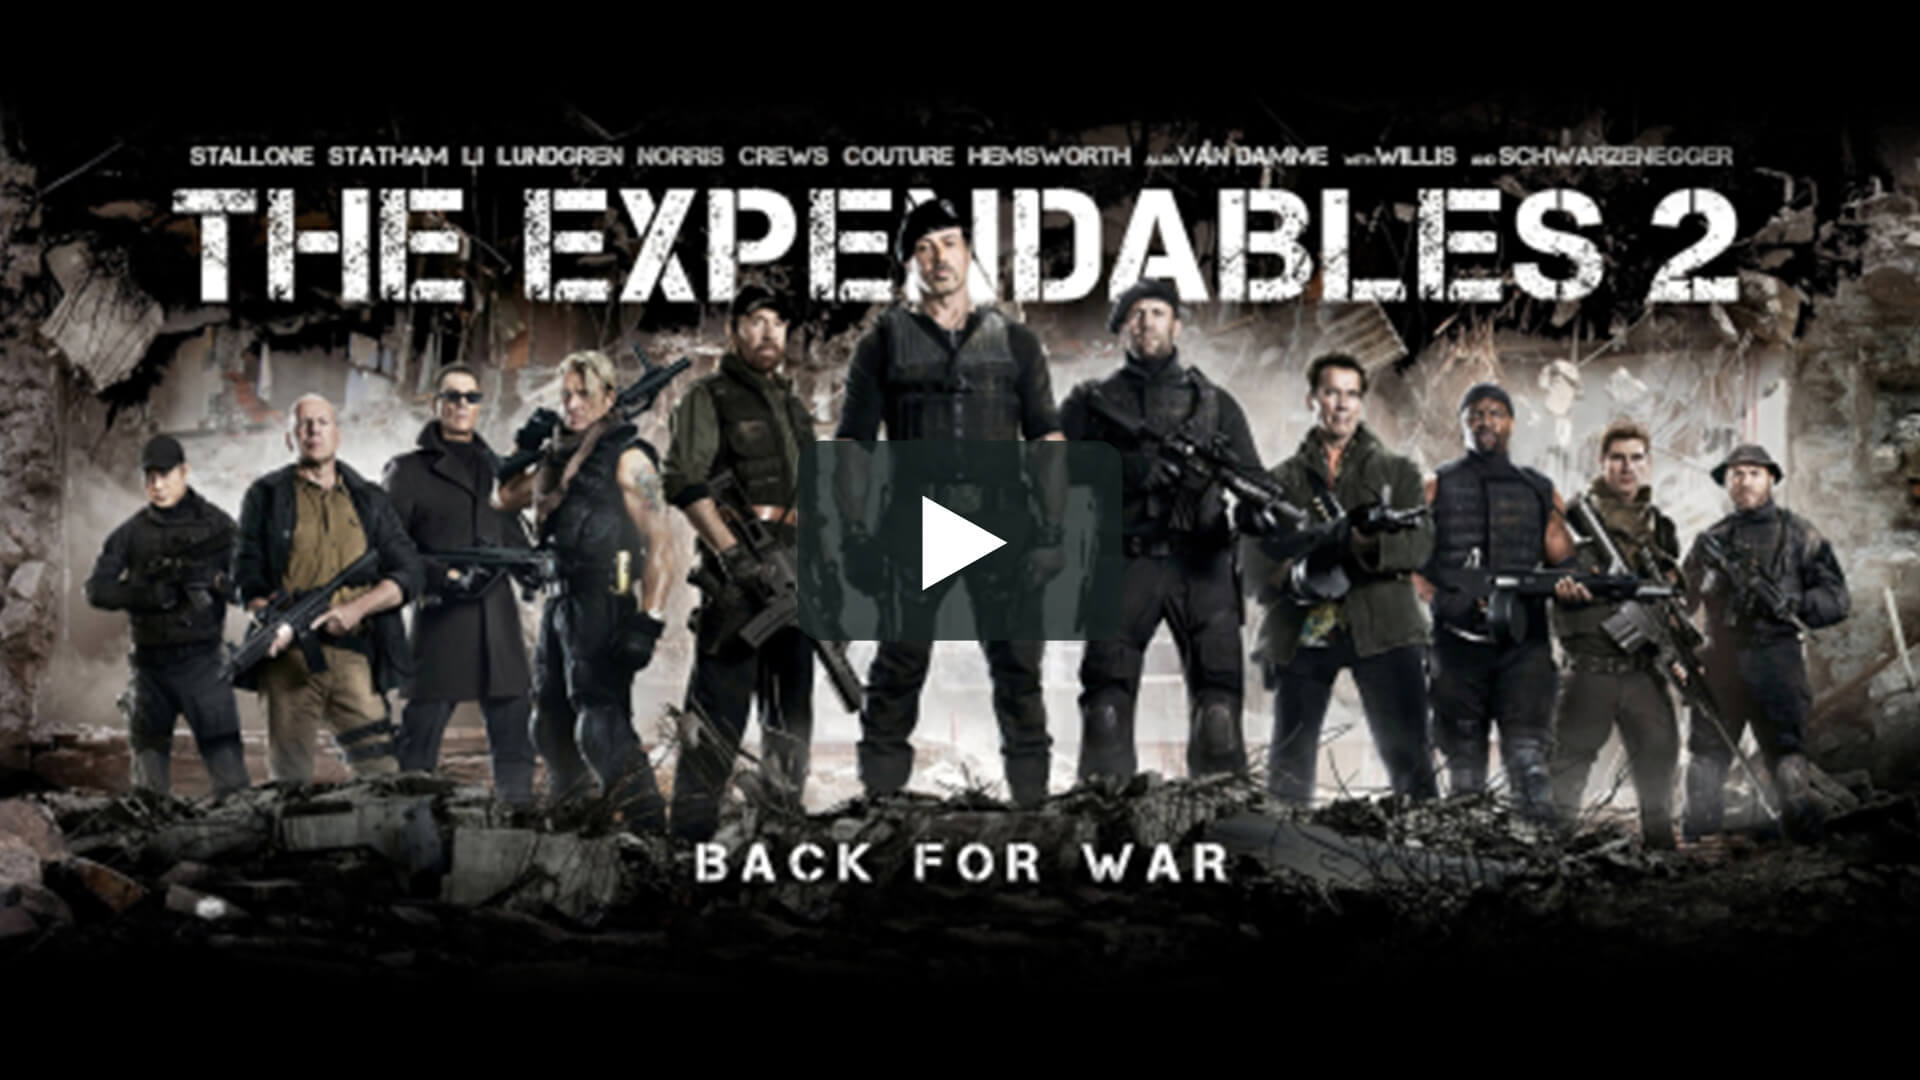 The Expendables 2 - 敢死隊2